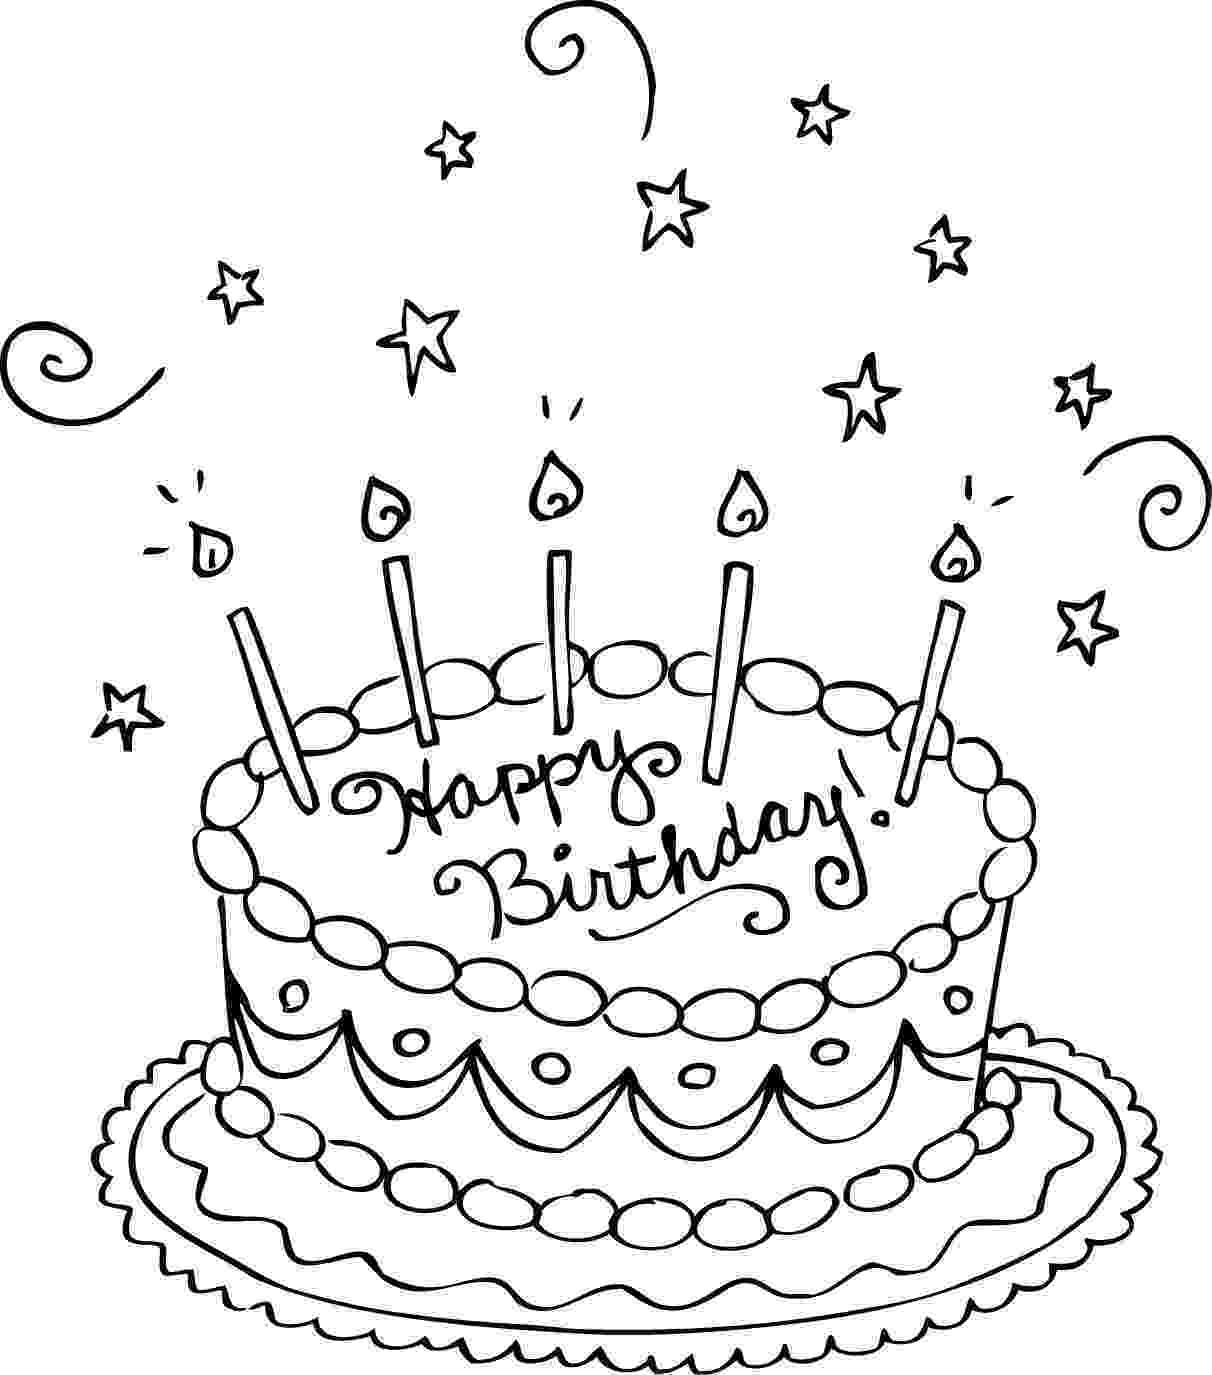 coloring page of a birthday cake birthday cake coloring pages for kids coloring birthday a cake of page